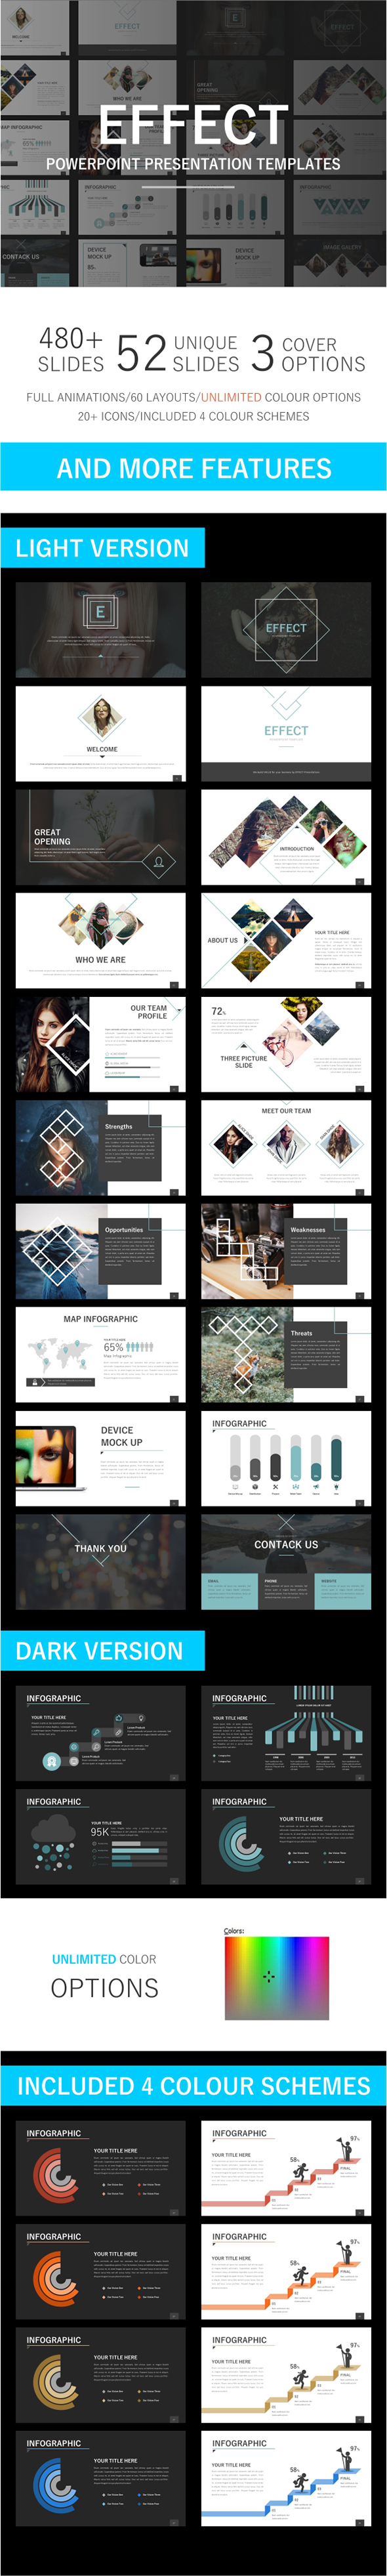 Effect Powerpoint Template - Business PowerPoint Templates